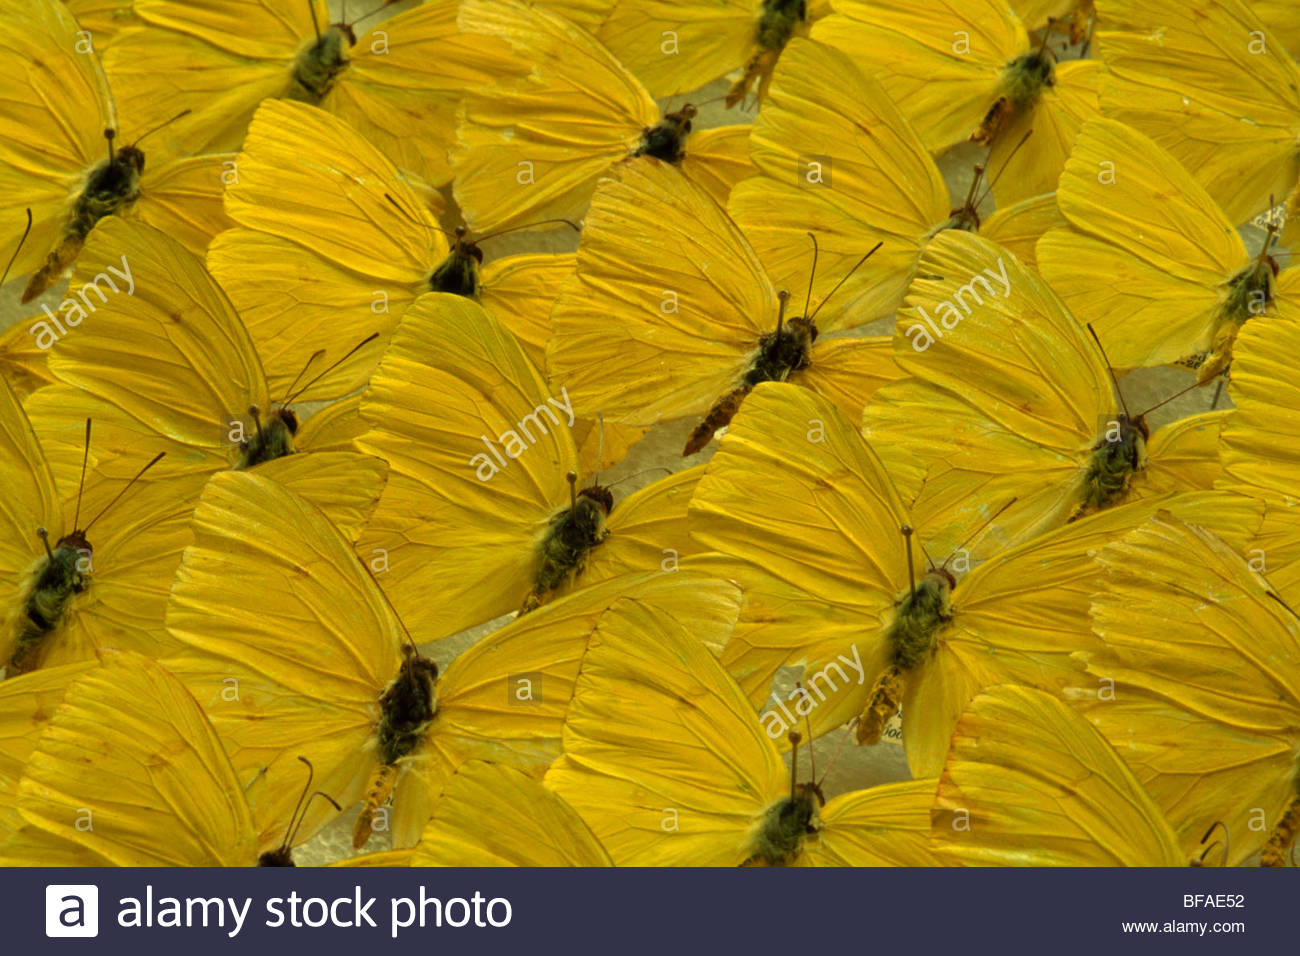 Cloudless sulfur butterfly specimens, Phoebis sennae, National Institute of Biodiversity, Costa Rica - Stock Image